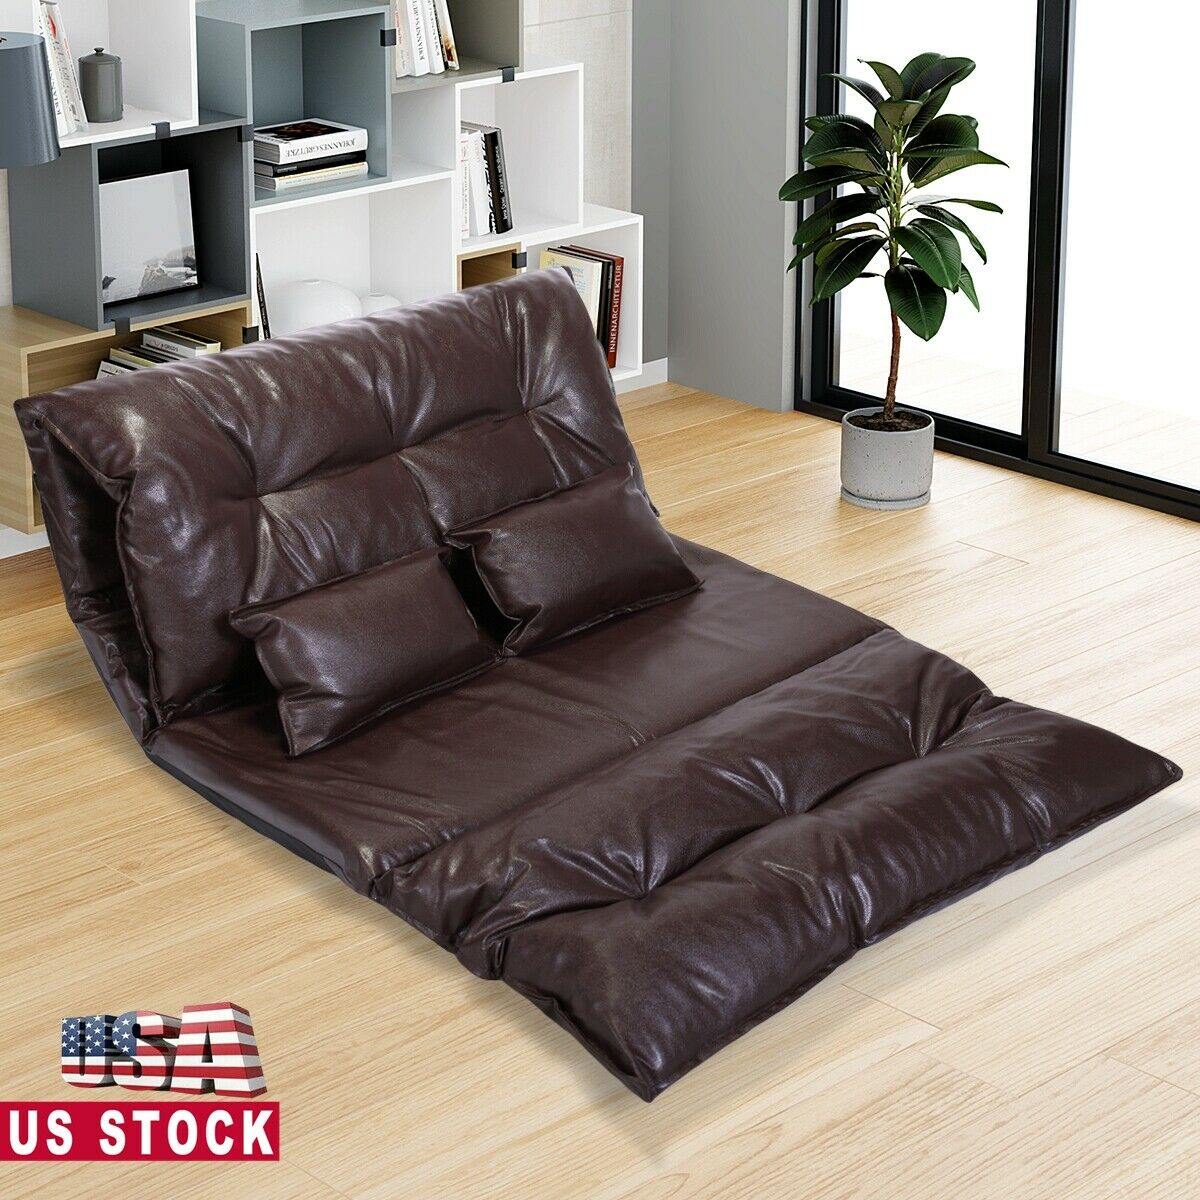 Picture of: Leather Chaise Lounge Chair Sofa Bedroom Lay Back Relax Comfy Upholstered Brown For Sale Online Ebay